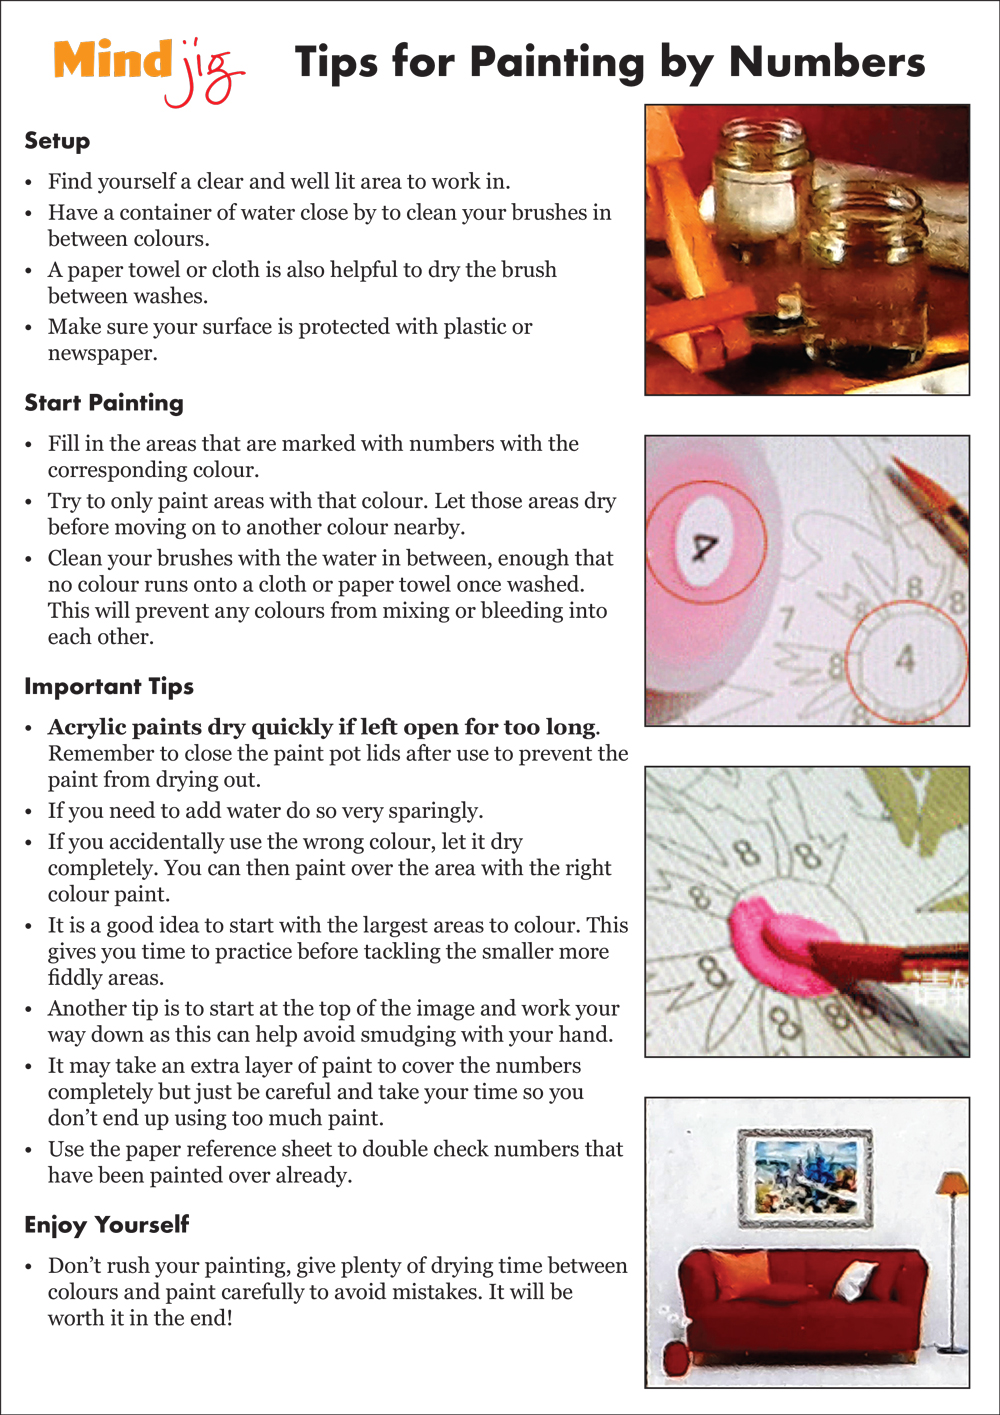 tips-for-painting-by-numbers-mindjig.jpg